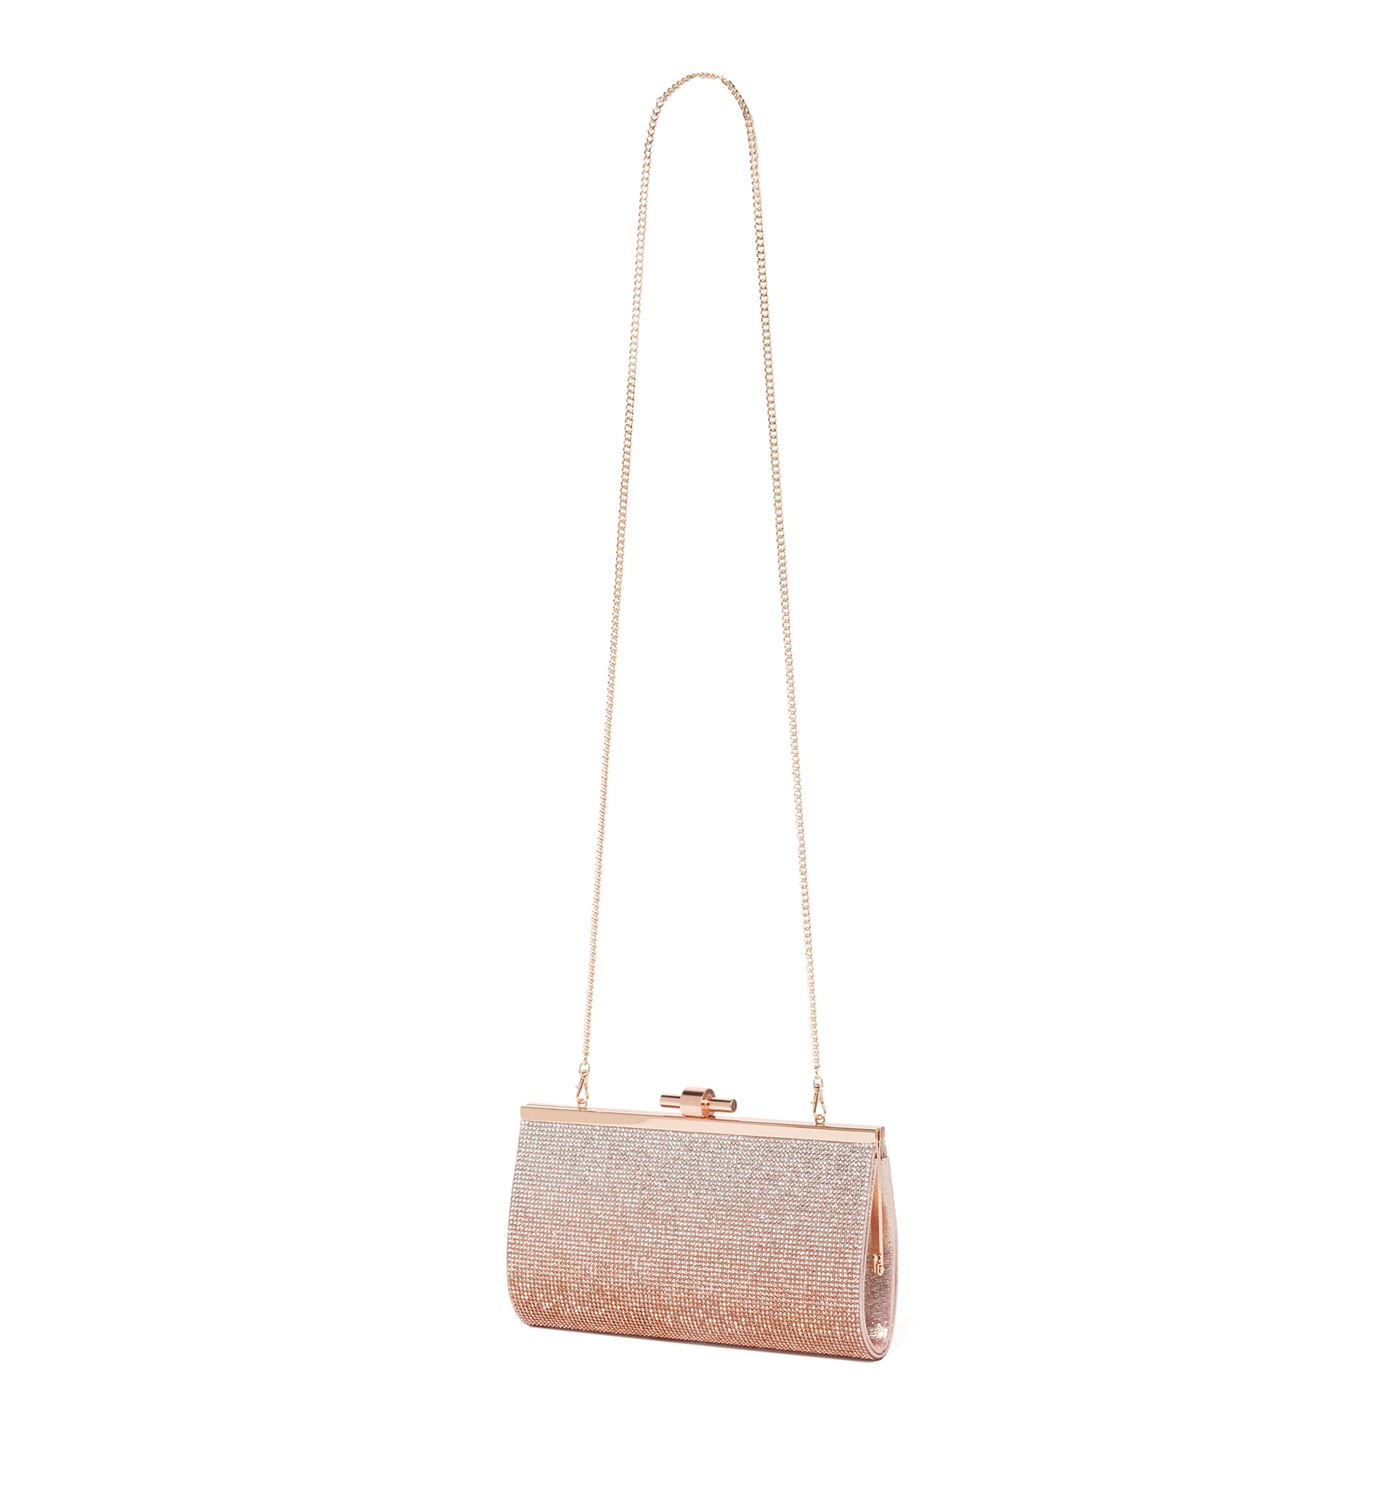 Forever New Women's Pink Clutch with Detachable Shoulder Chain